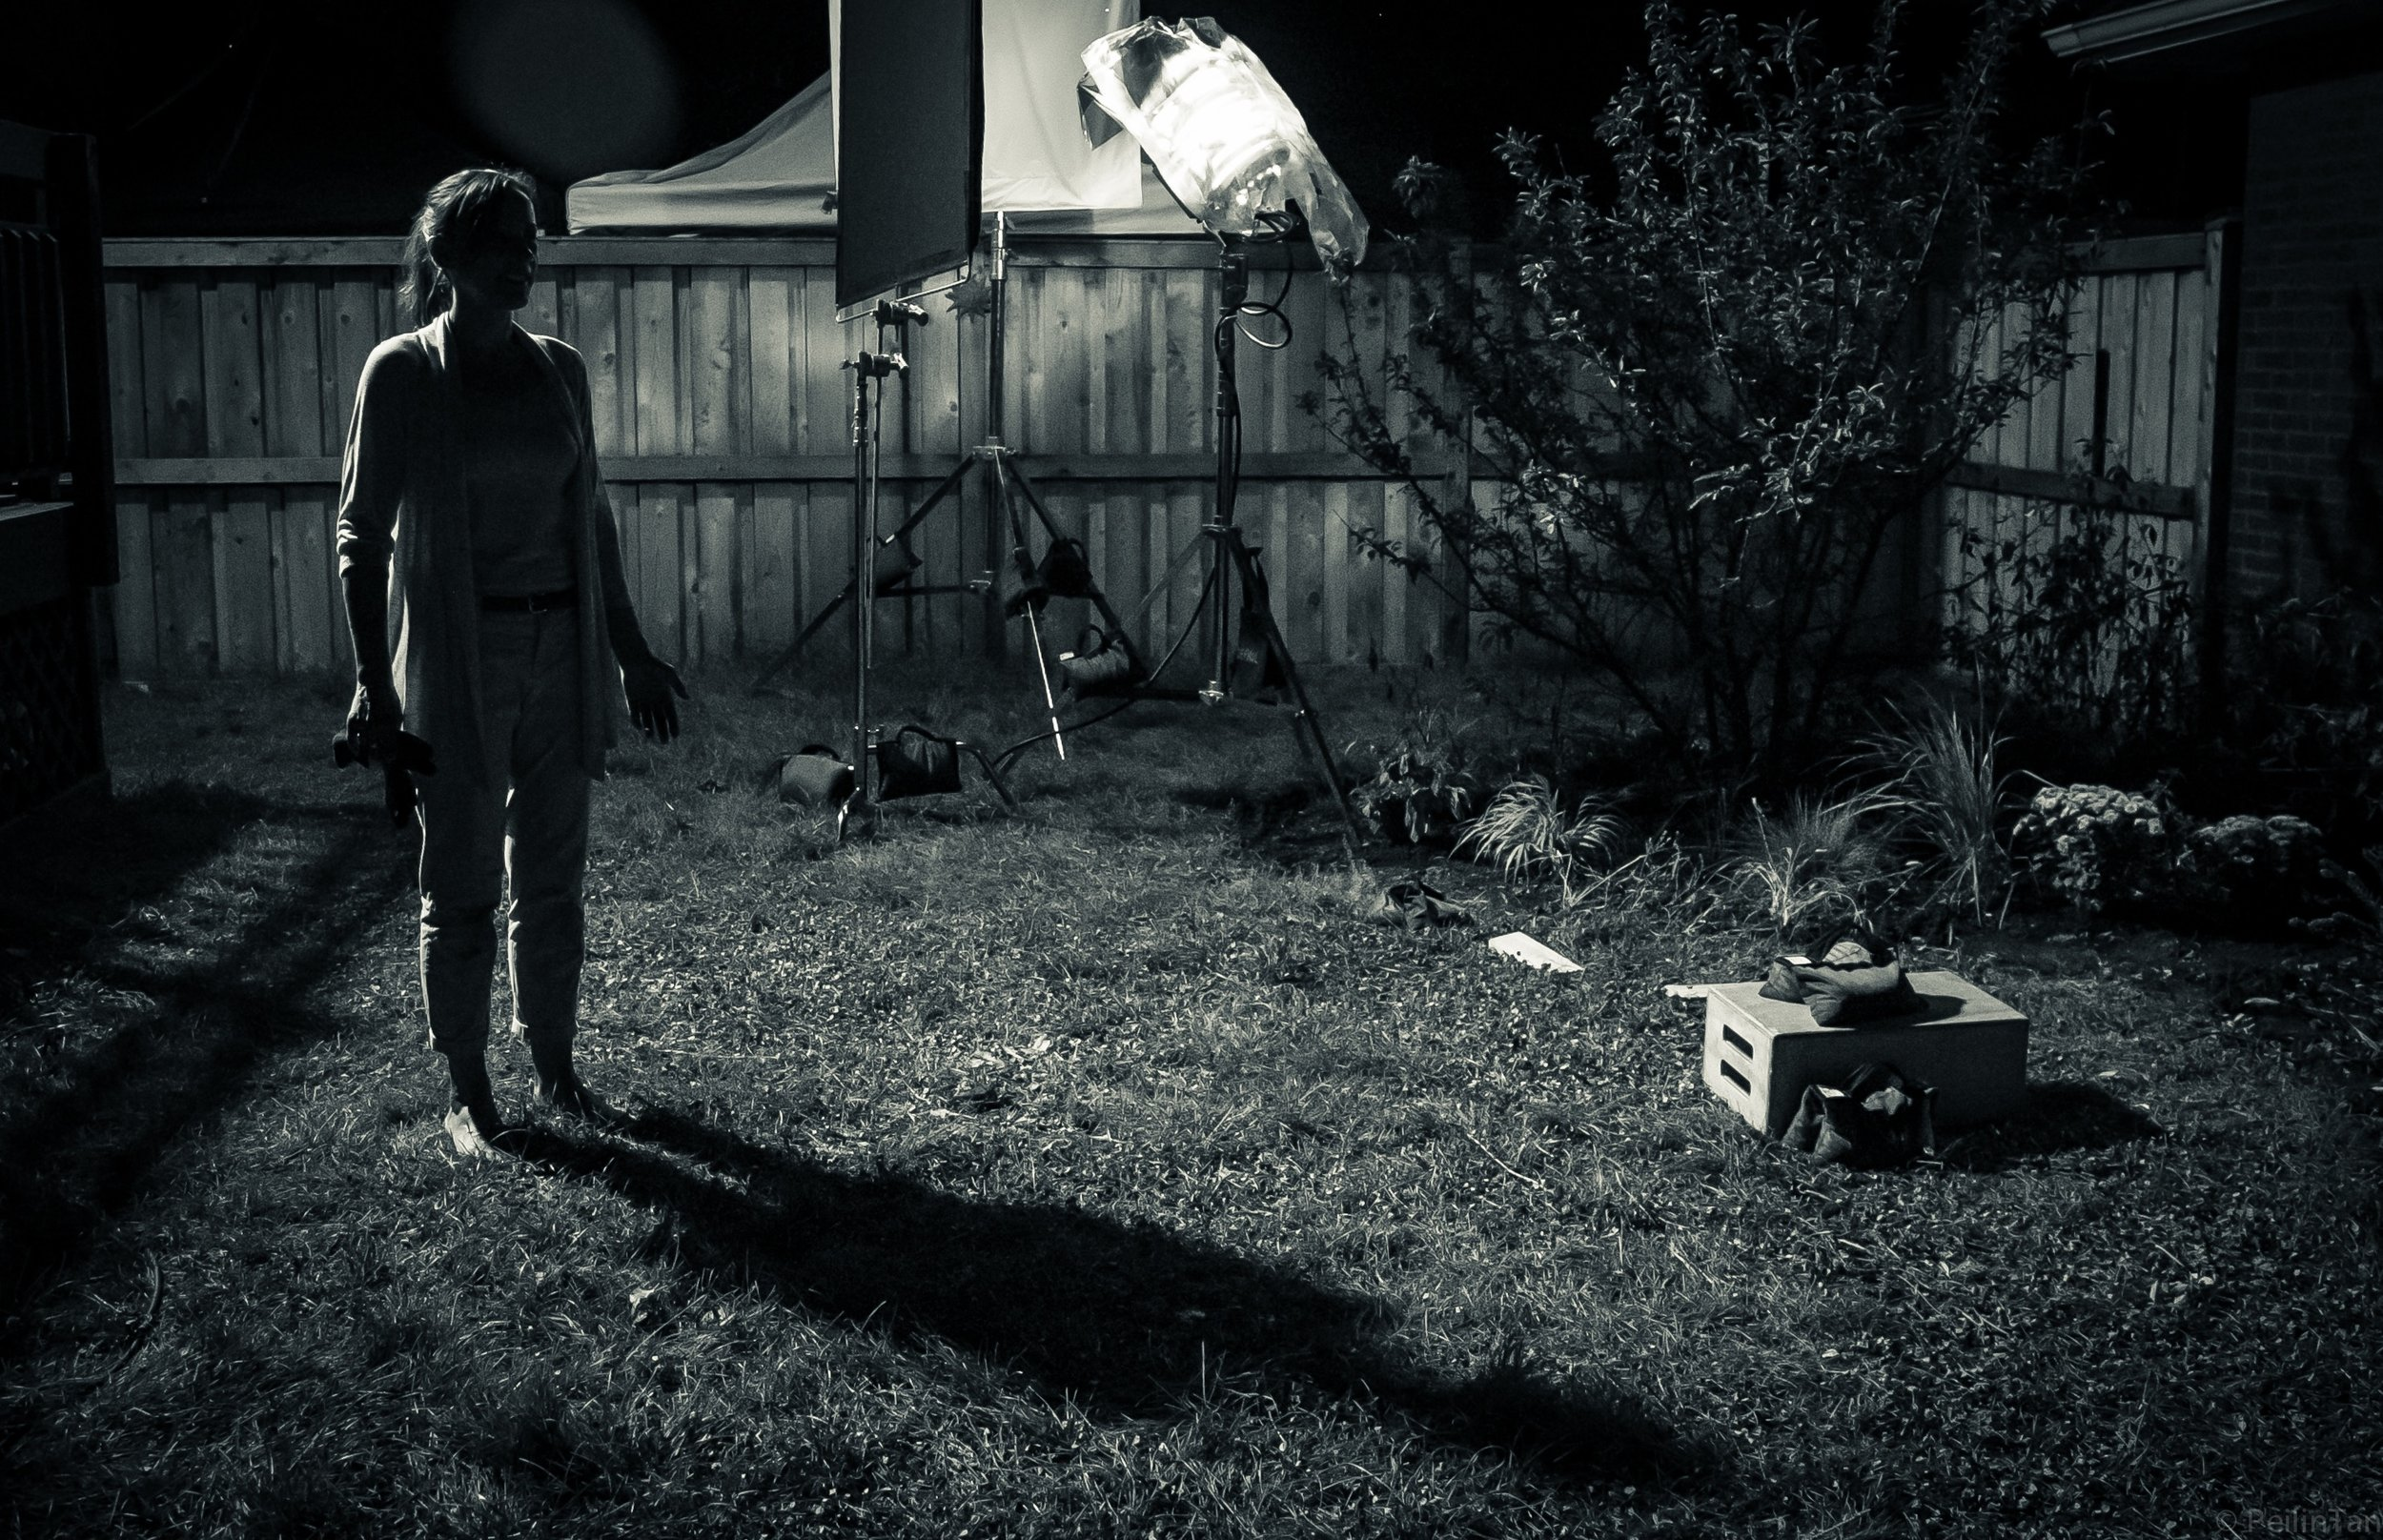 Janelle Snow on the set of 'Gardening at Night'